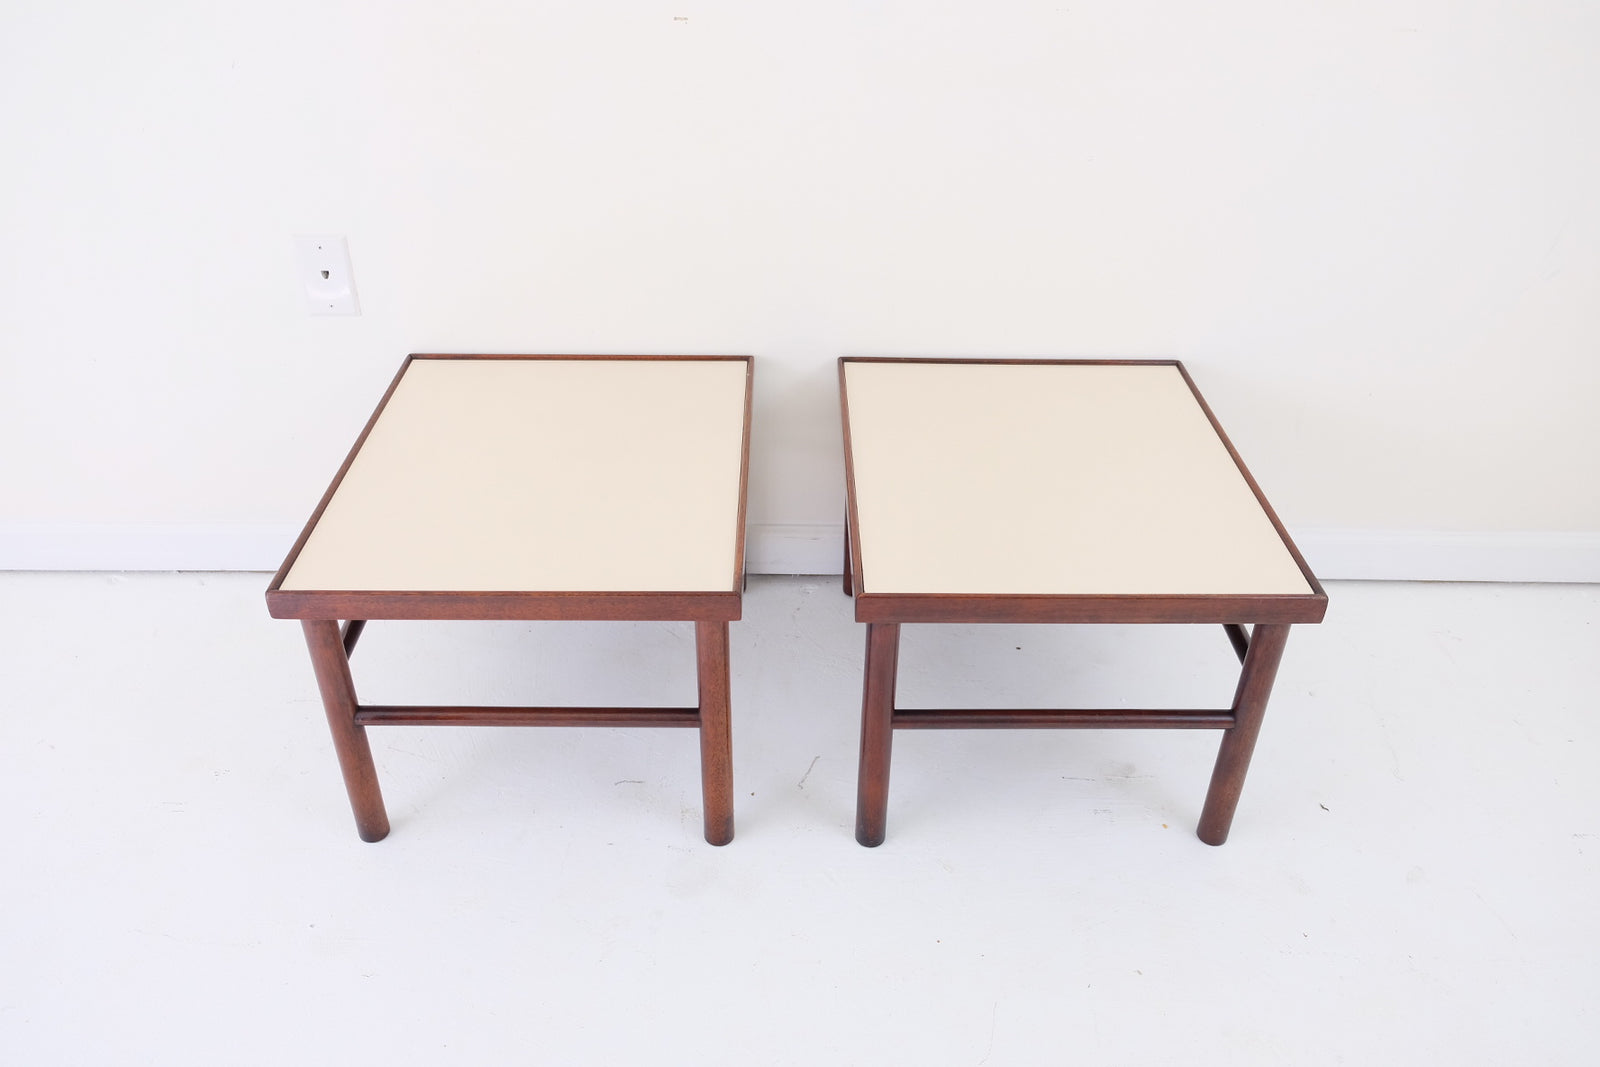 Dark Wood Side Tables with Cream Melamine Top and Rounded Legs